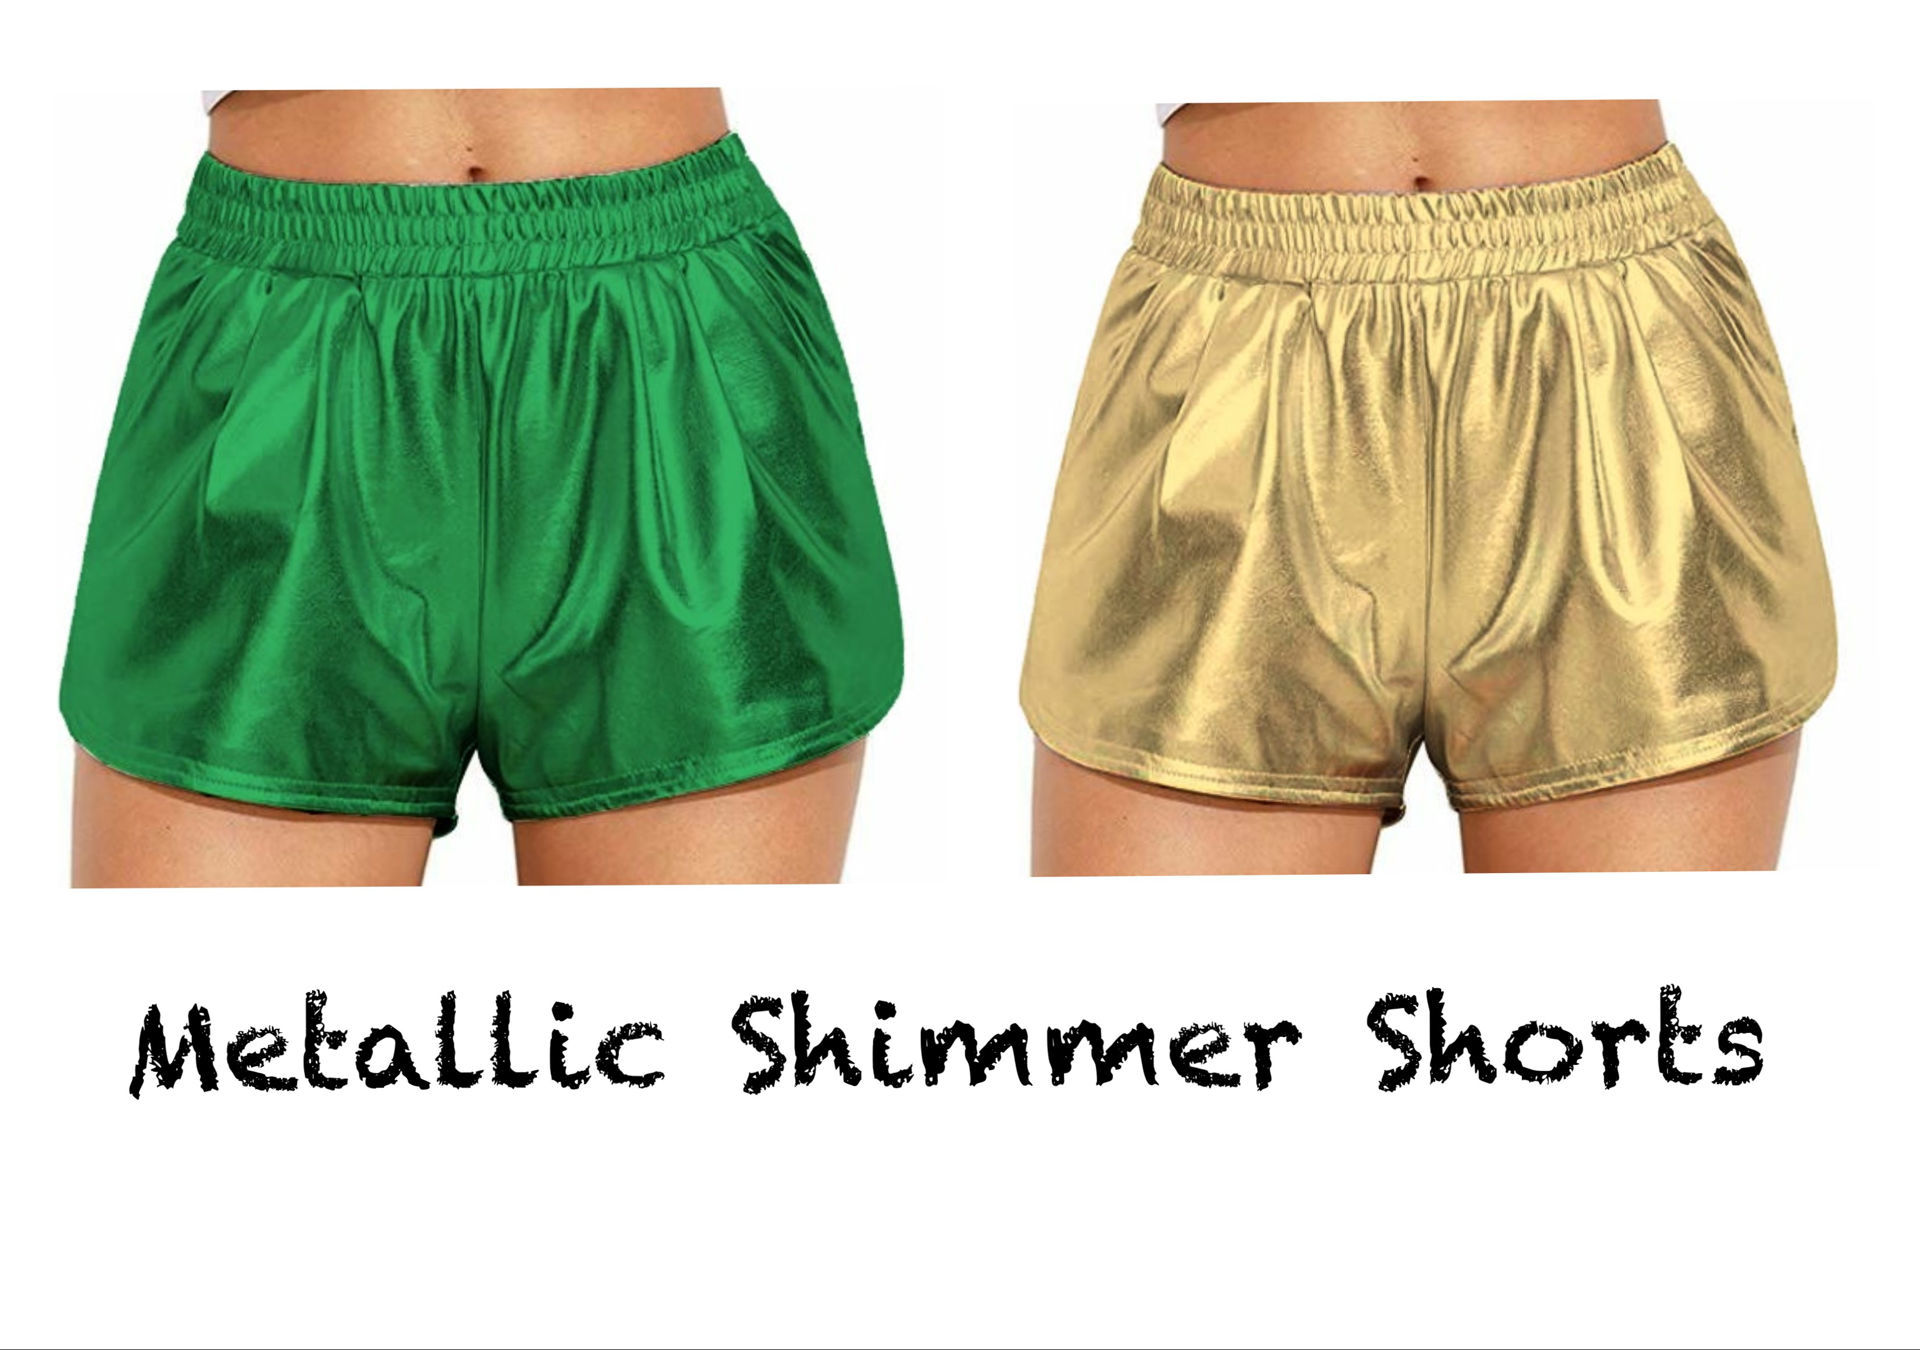 Picture of Metallic Shorts - Youth and Adult